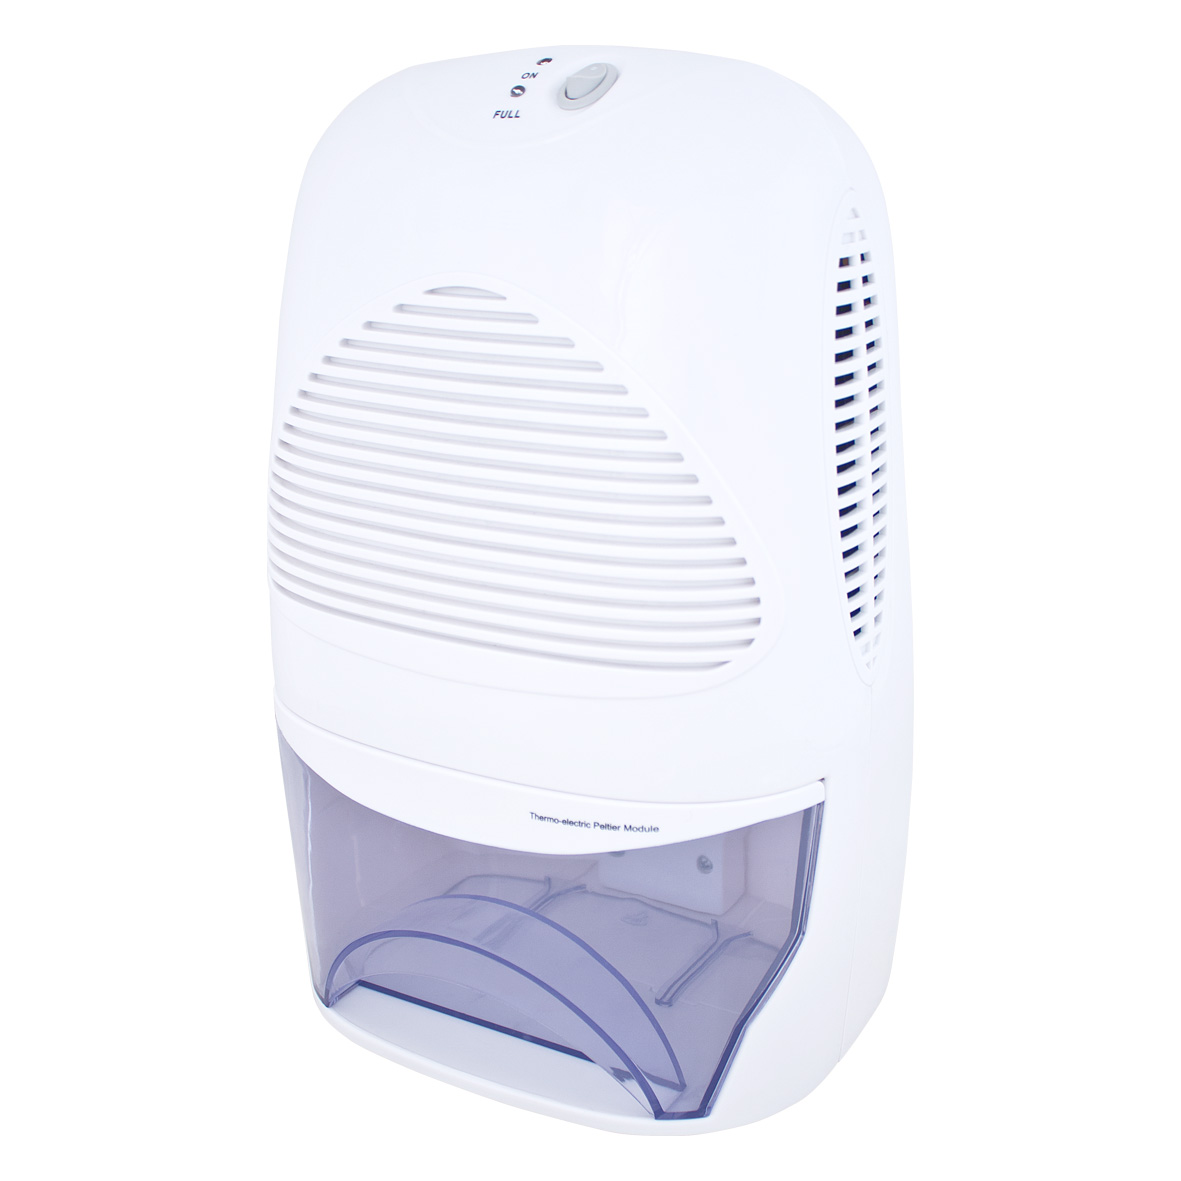 Compact portable mini air dehumidifier damp mould moisture home kitchen bedroom ebay for Small dehumidifier for bedroom